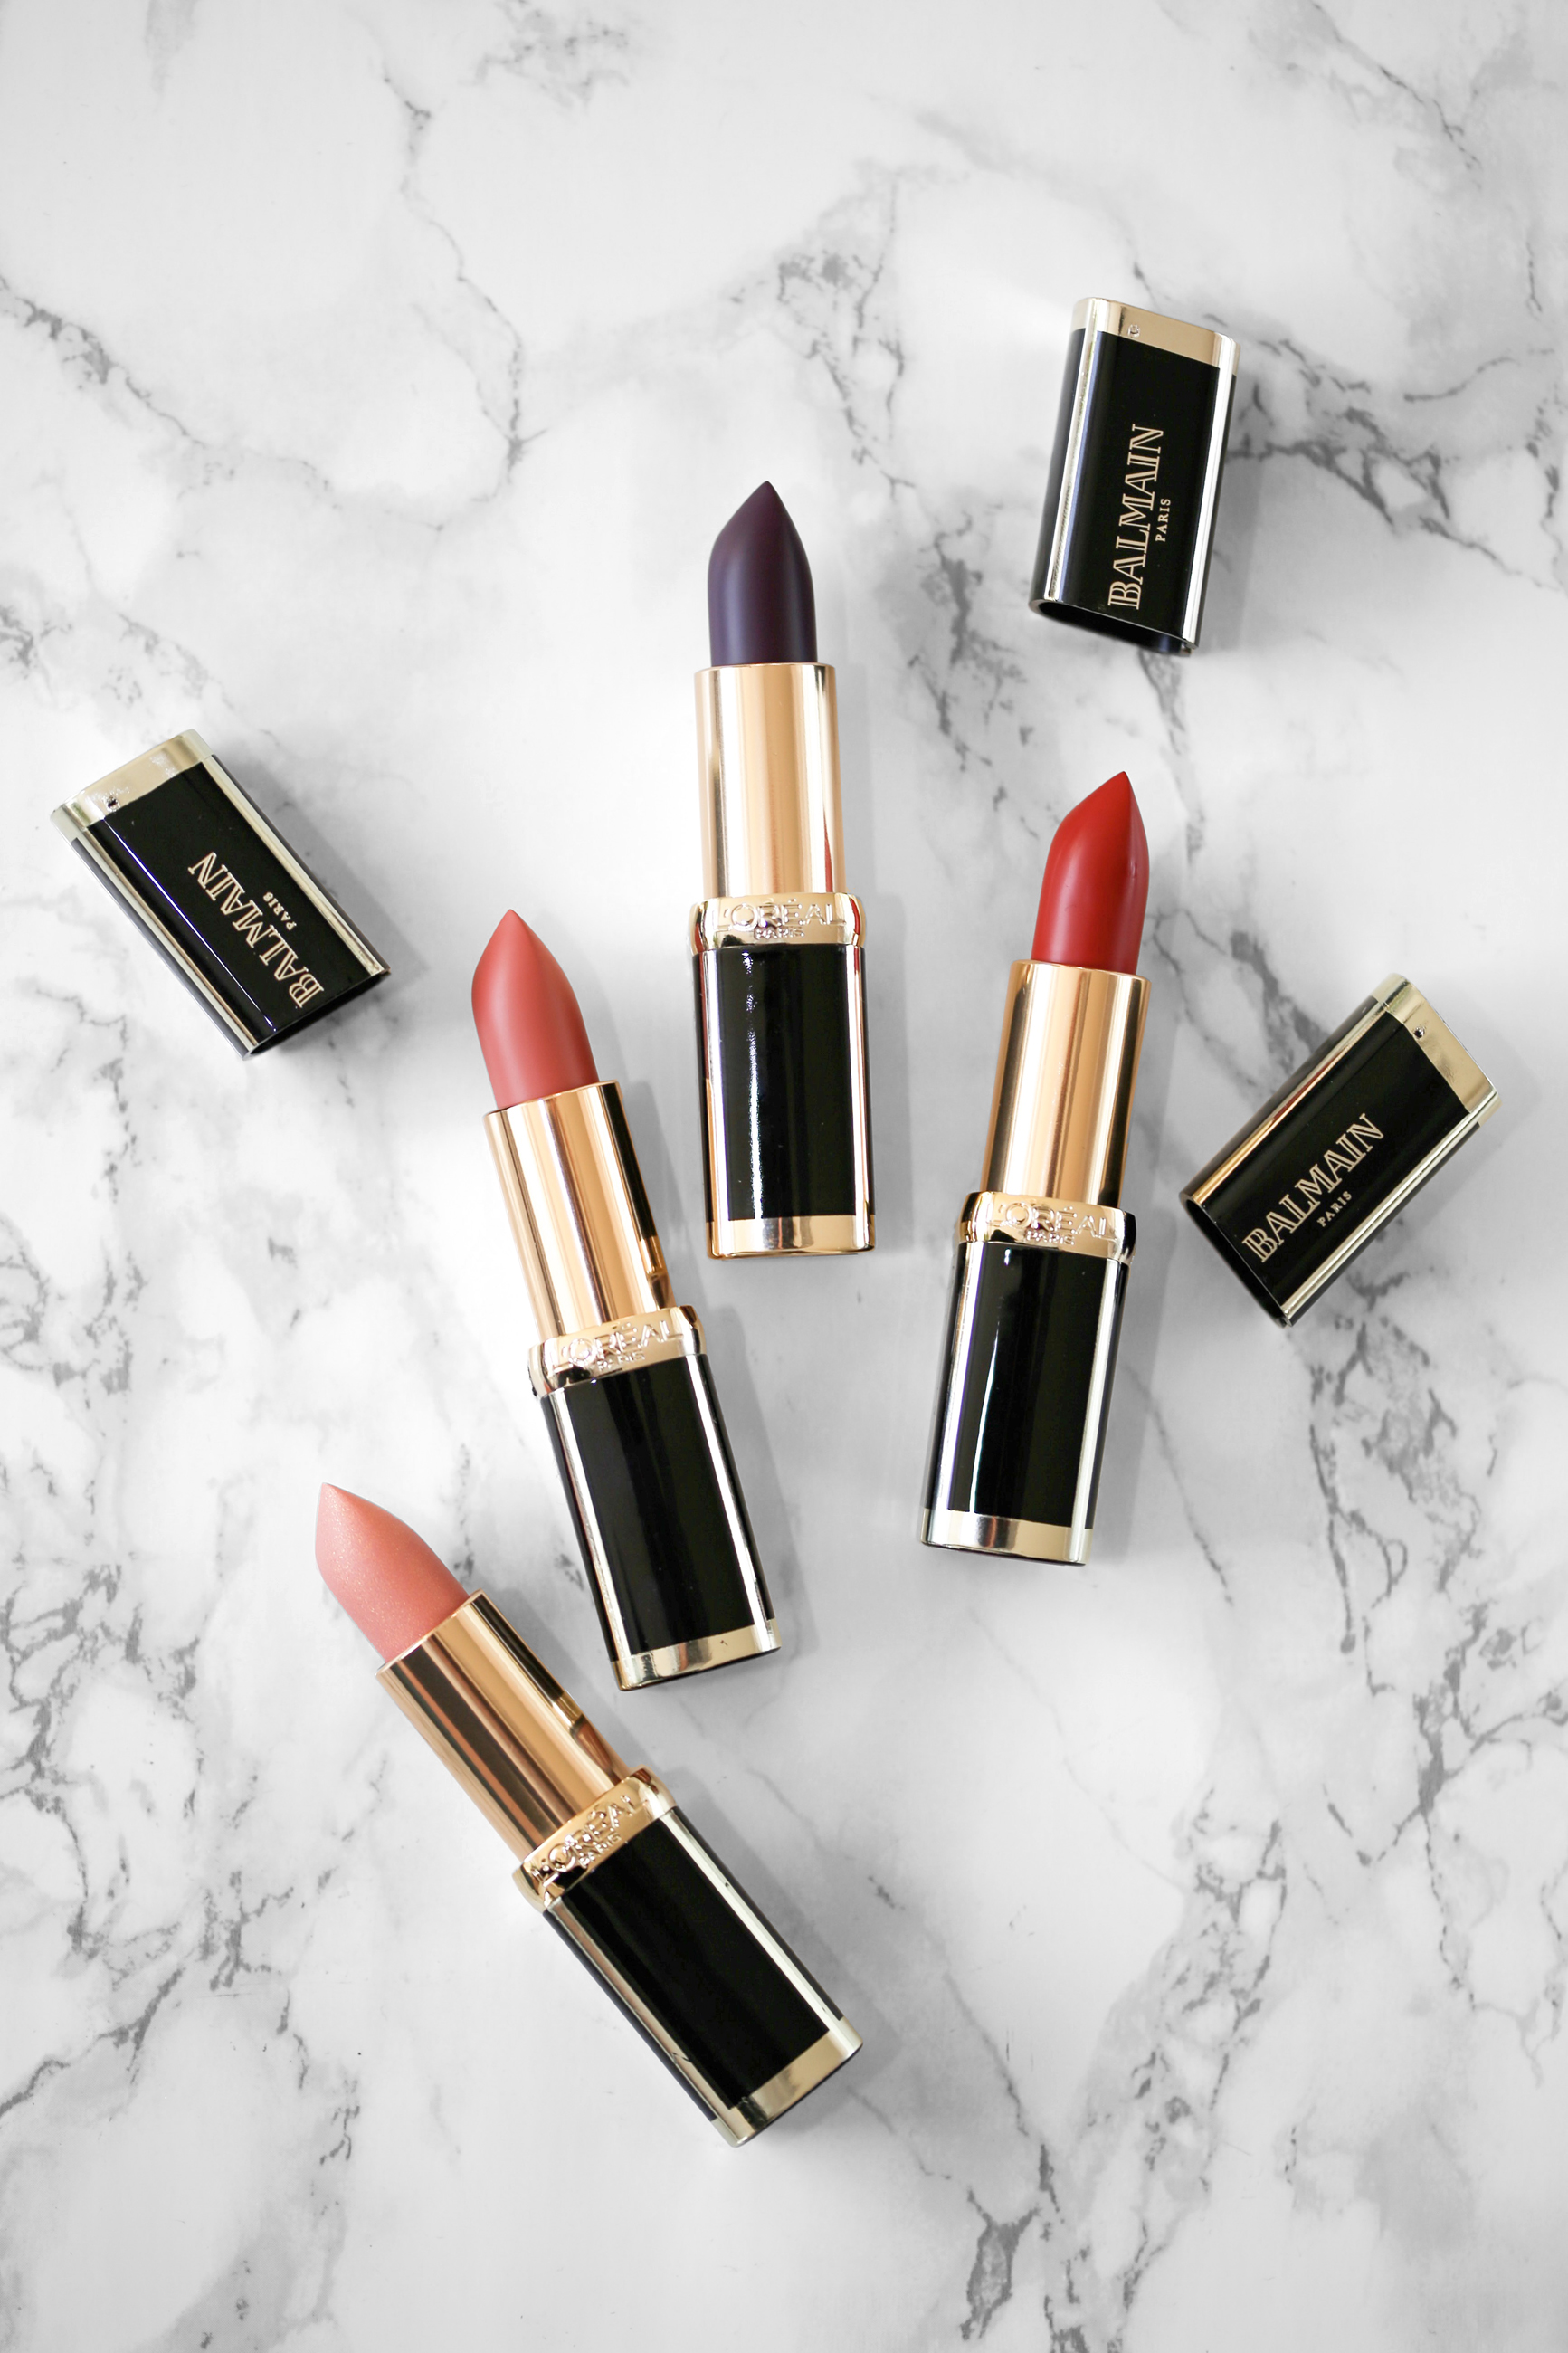 L'Oreal X Balmain Couture LIPSTICK collection - Confidence, Liberation, Domination, Confession Swatches